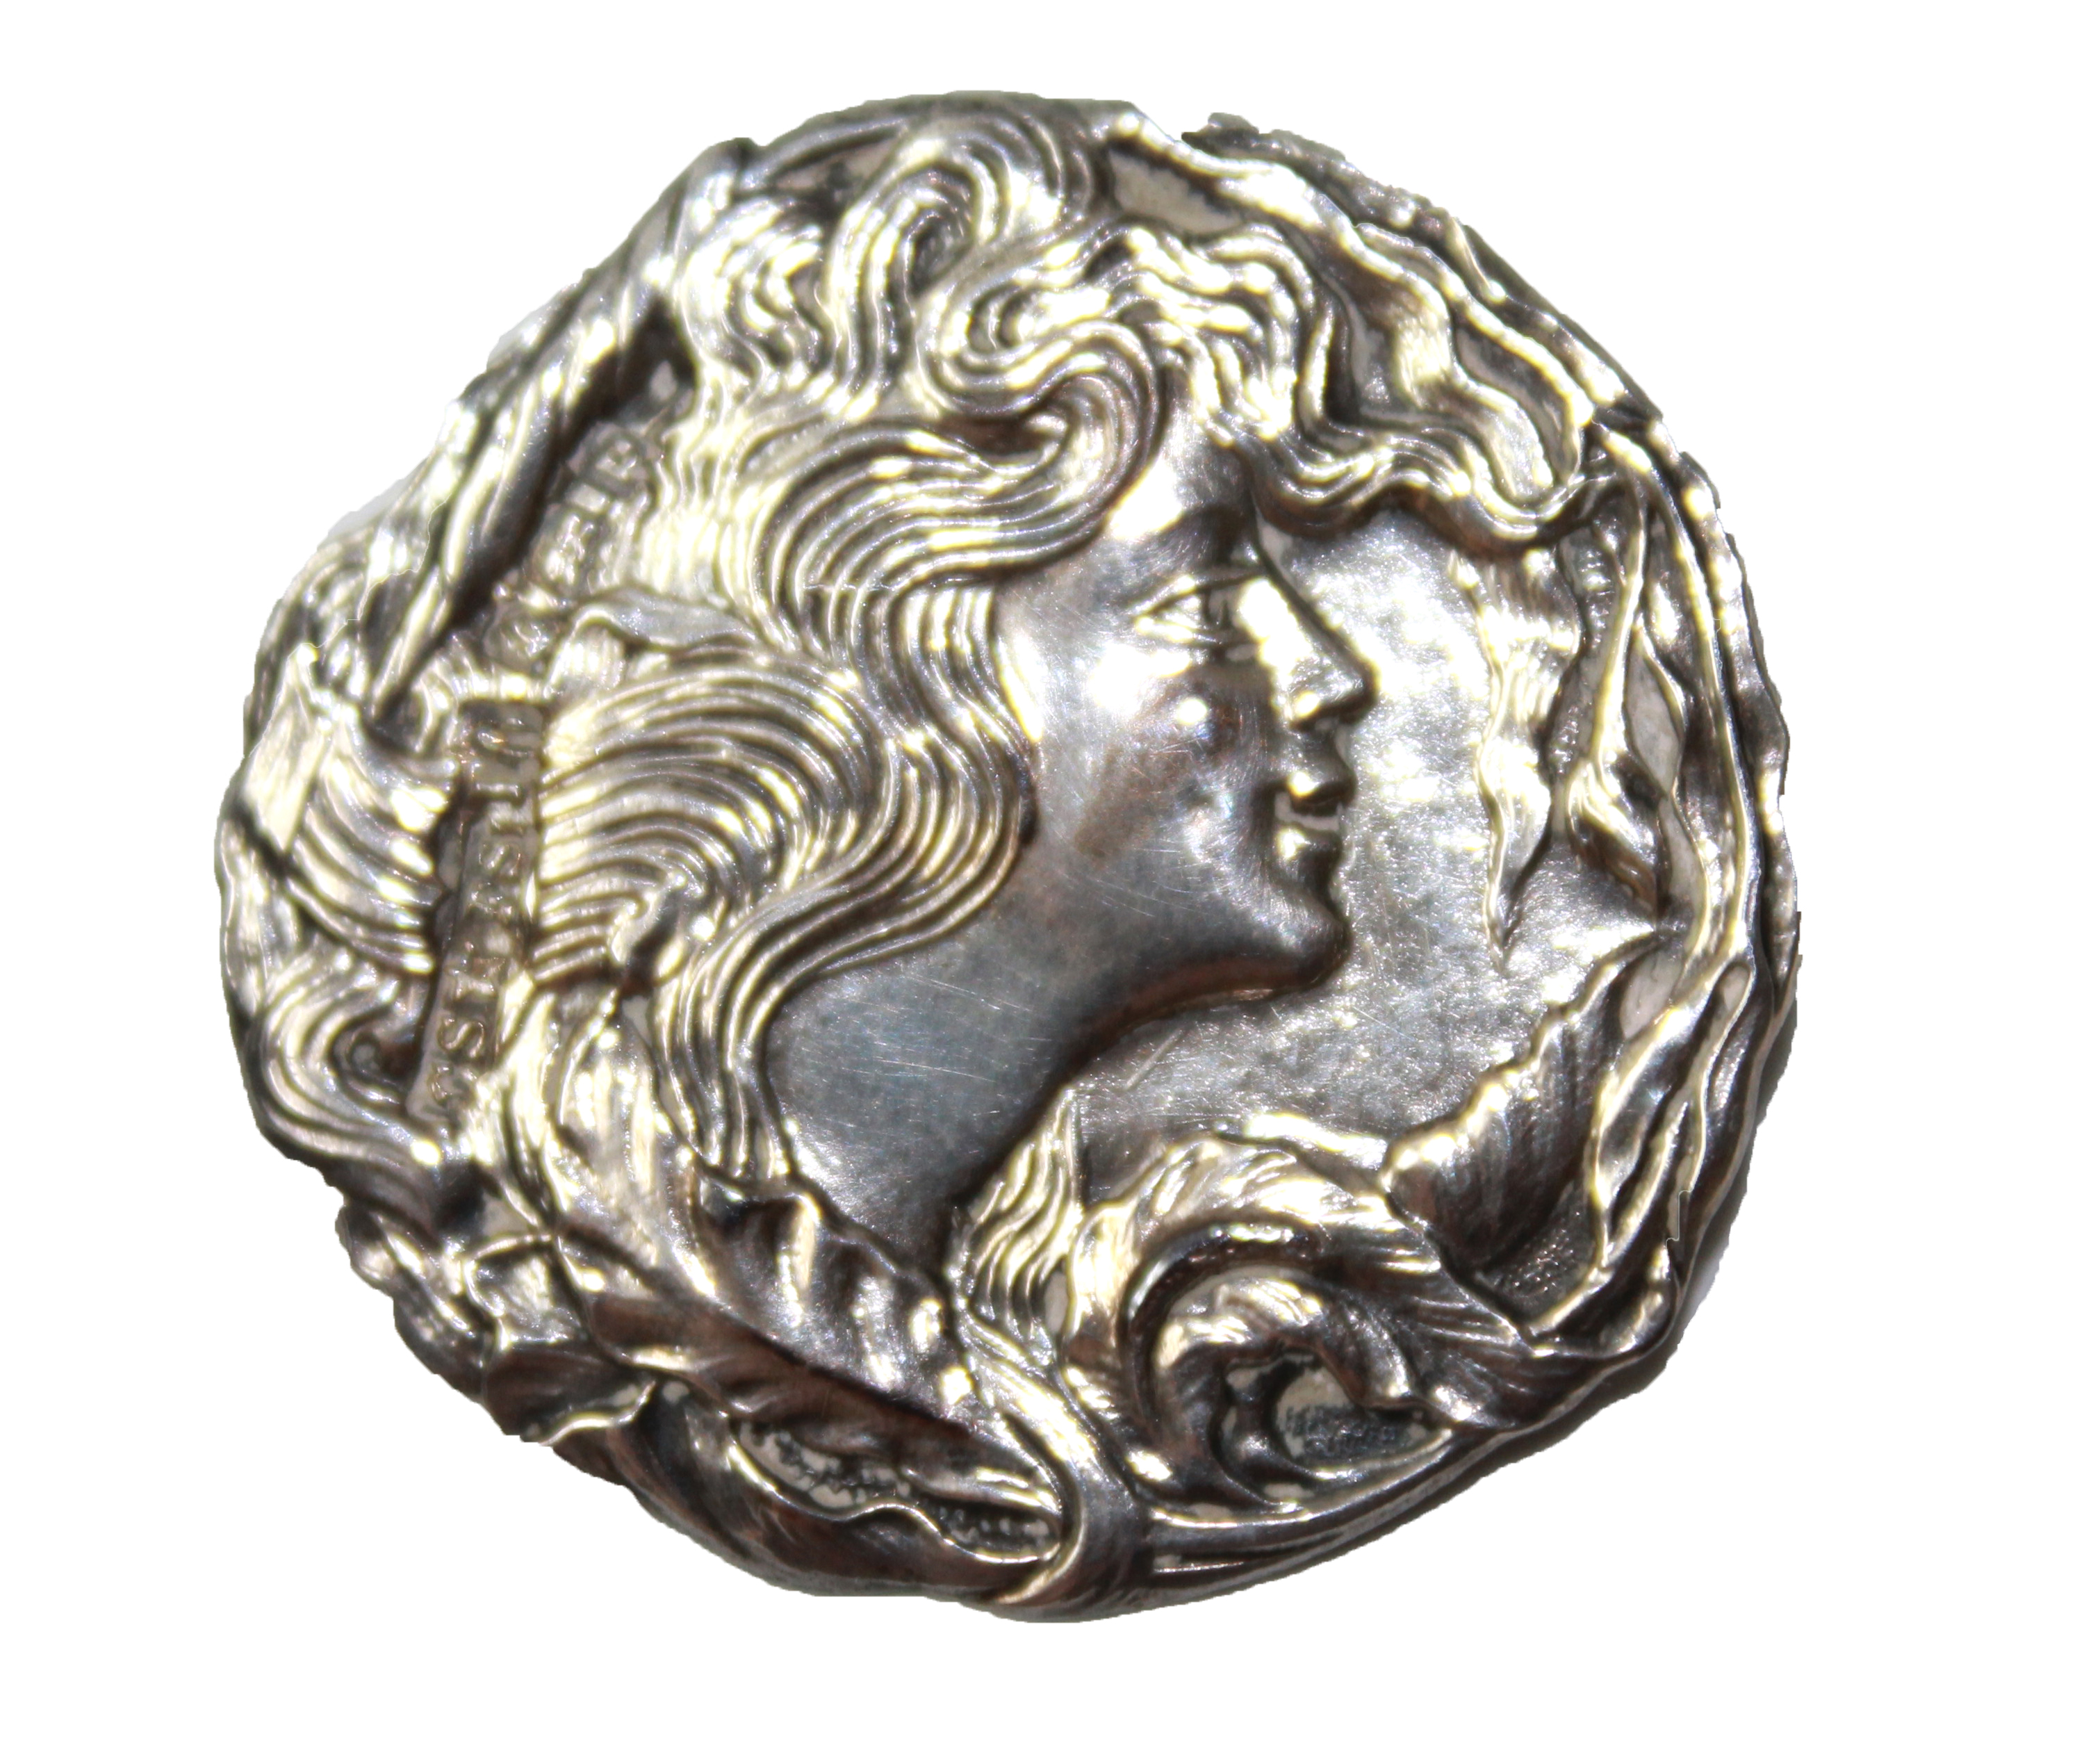 Lot 3 - A PART SET OF EARLY 20TH CENTURY SILVER BUTTONS Each having an Art Nouveau style profile portrait of